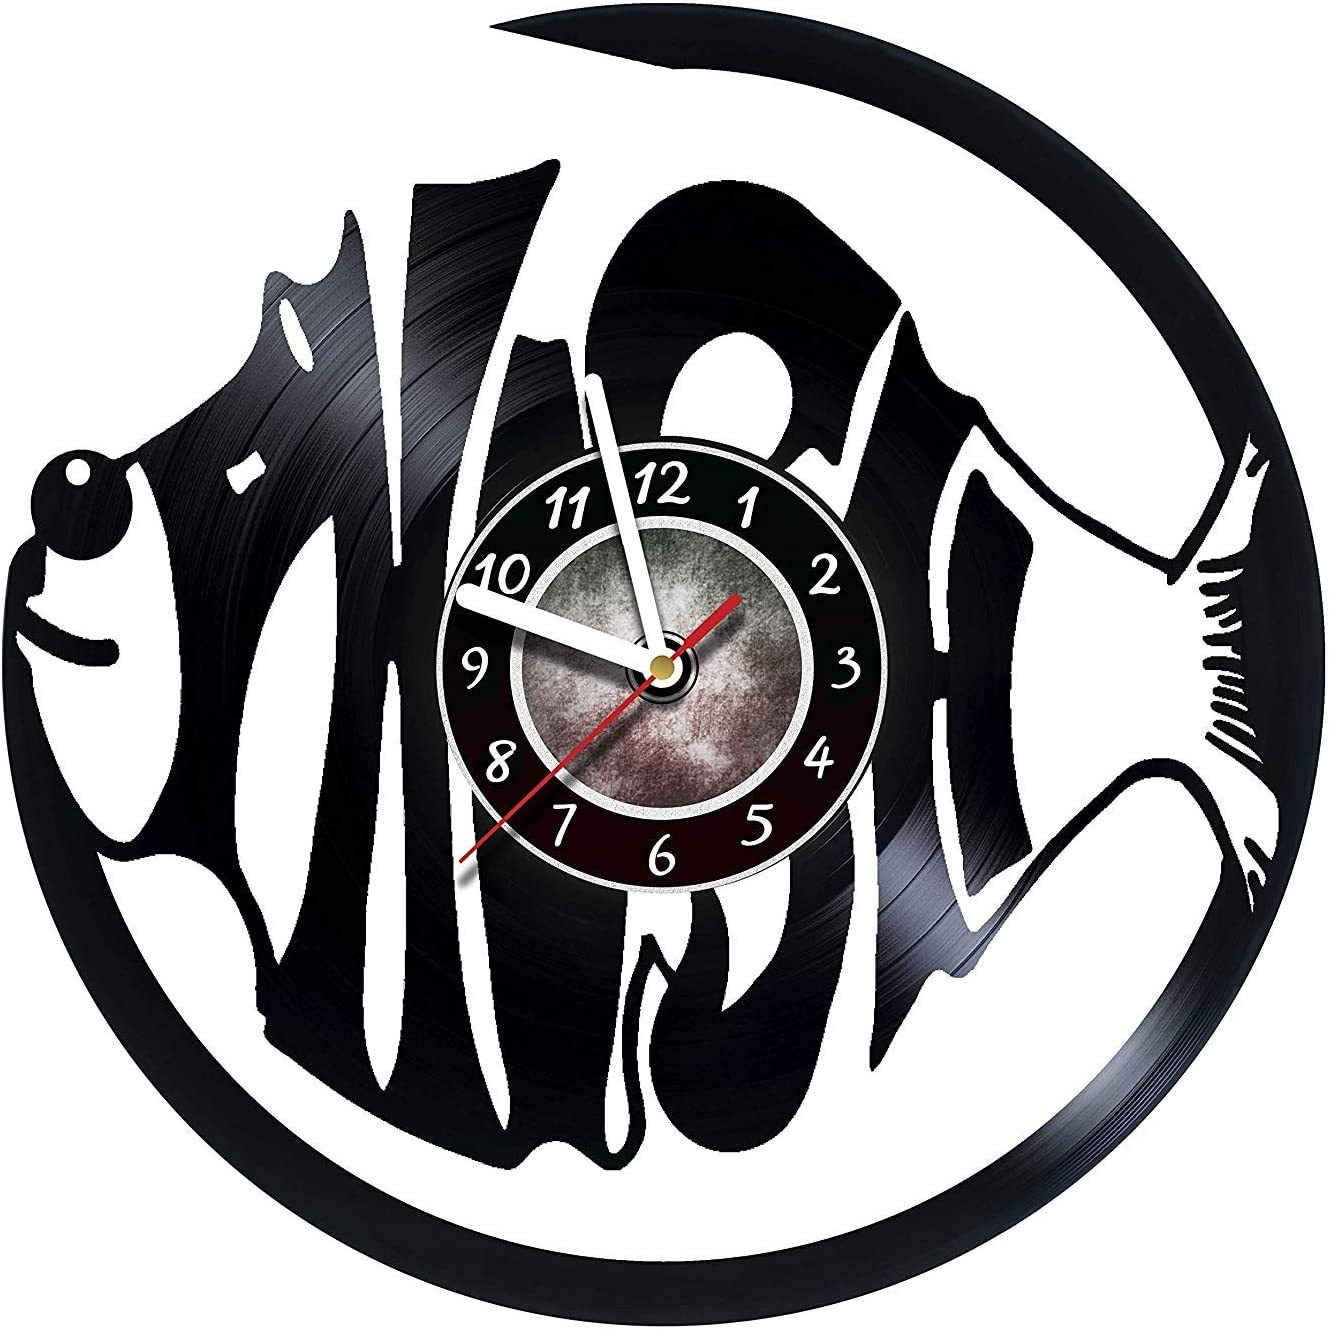 Wall Clock Compatible with Phish - Vinyl Wall Clock - Gifts Presents for Birthday, Christmas, Ideas for Boys, Girls, Men, Women, Adults, him and her - Sport Unique Art Design